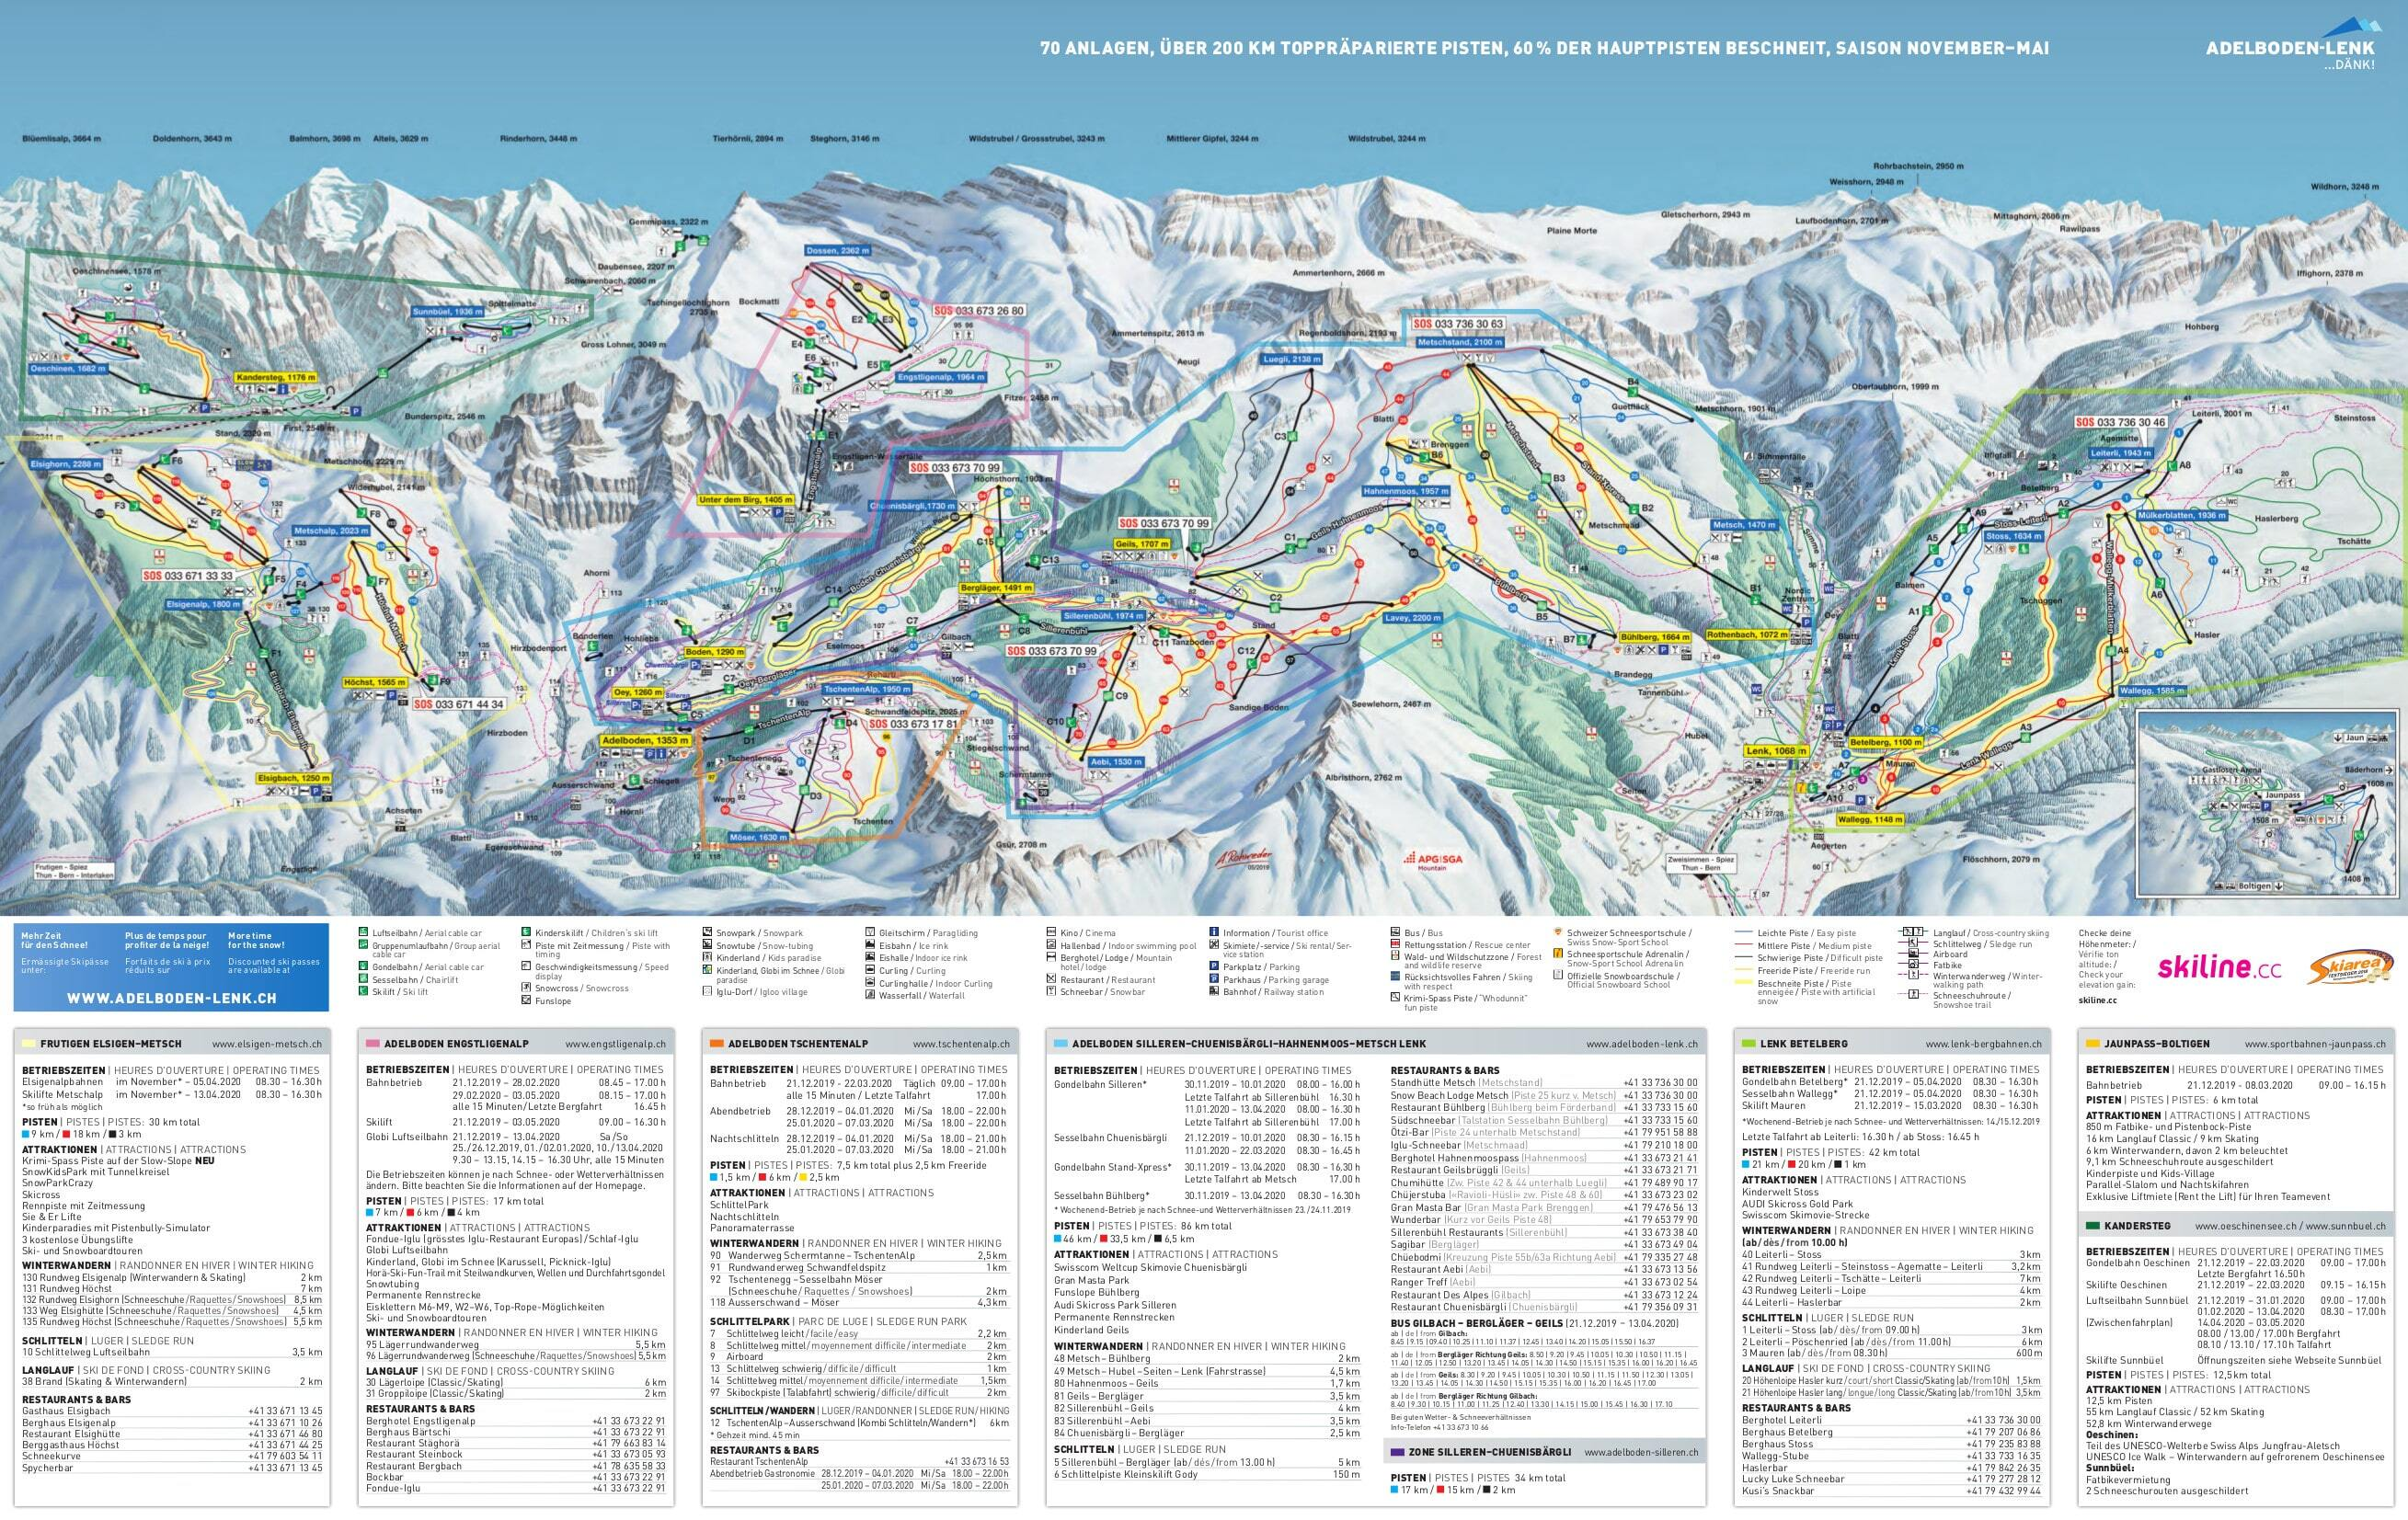 Adelboden Ski Resort Guide Location Map Adelboden ski holiday